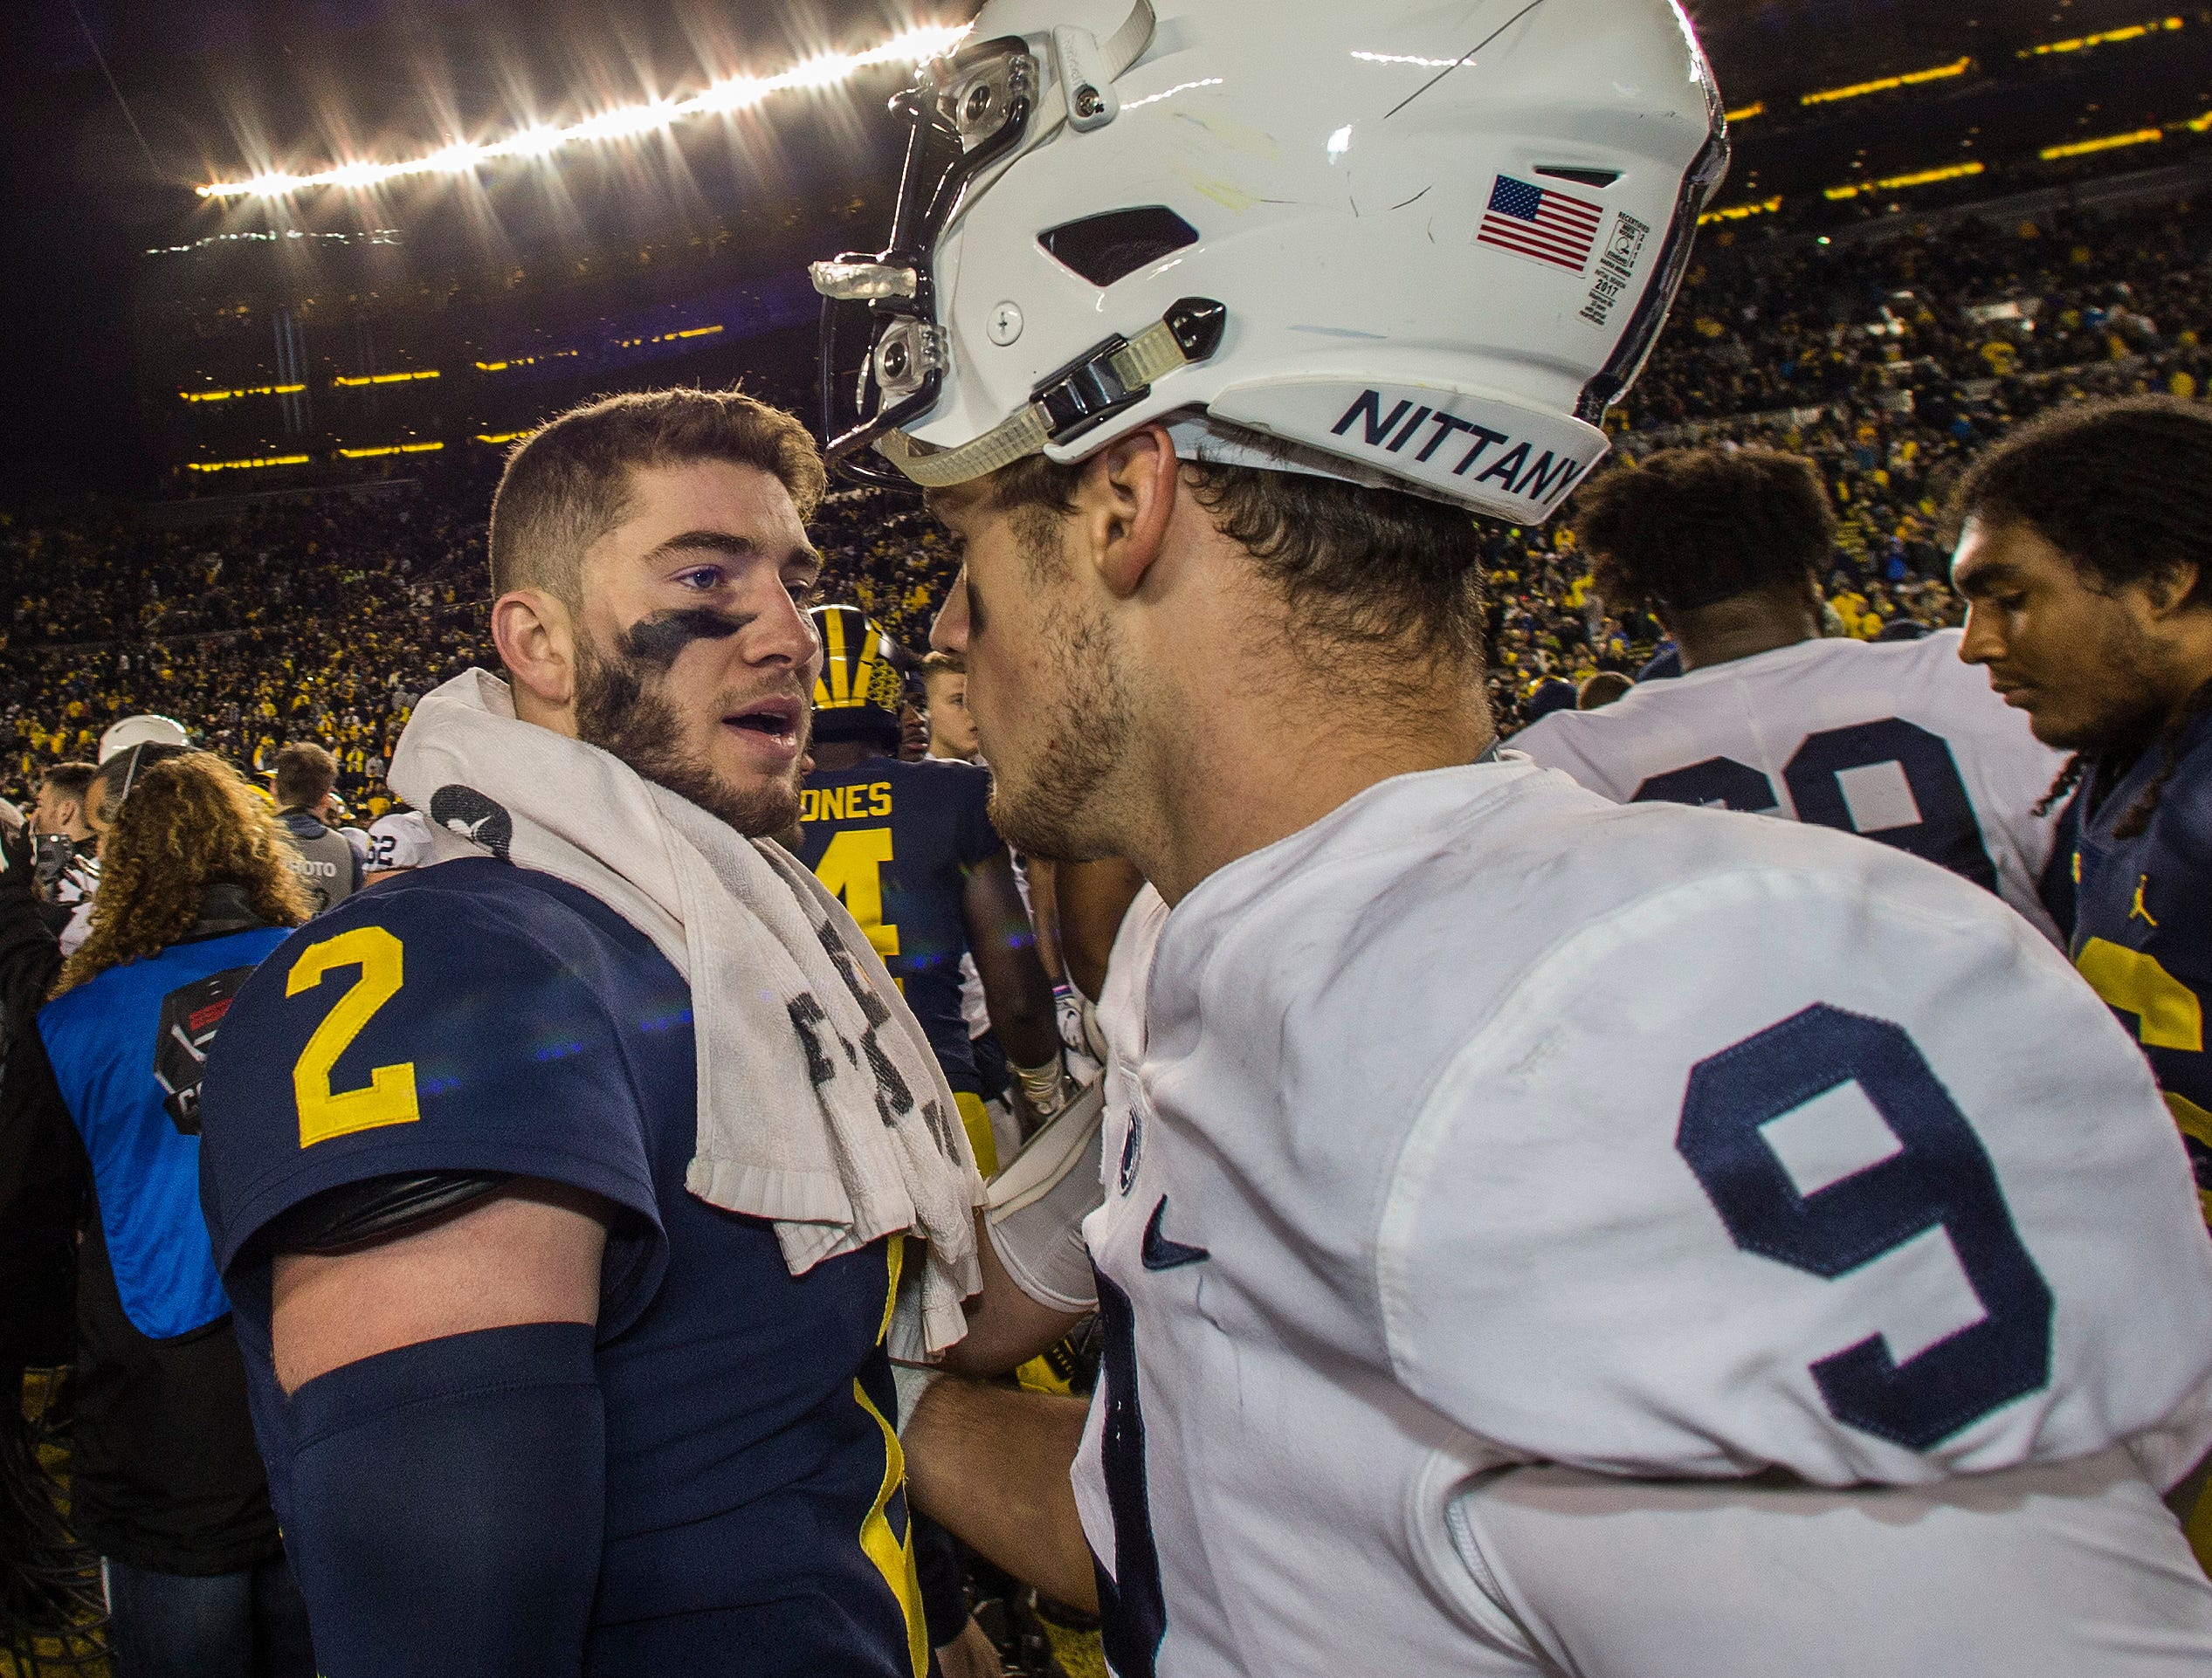 Michigan quarterback Shea Patterson (2) meets with Penn State quarterback Trace McSorley (9) after an NCAA college football game in Ann Arbor, Mich., Saturday, Nov. 3, 2018. Michigan won 42-7. (AP Photo/Tony Ding)